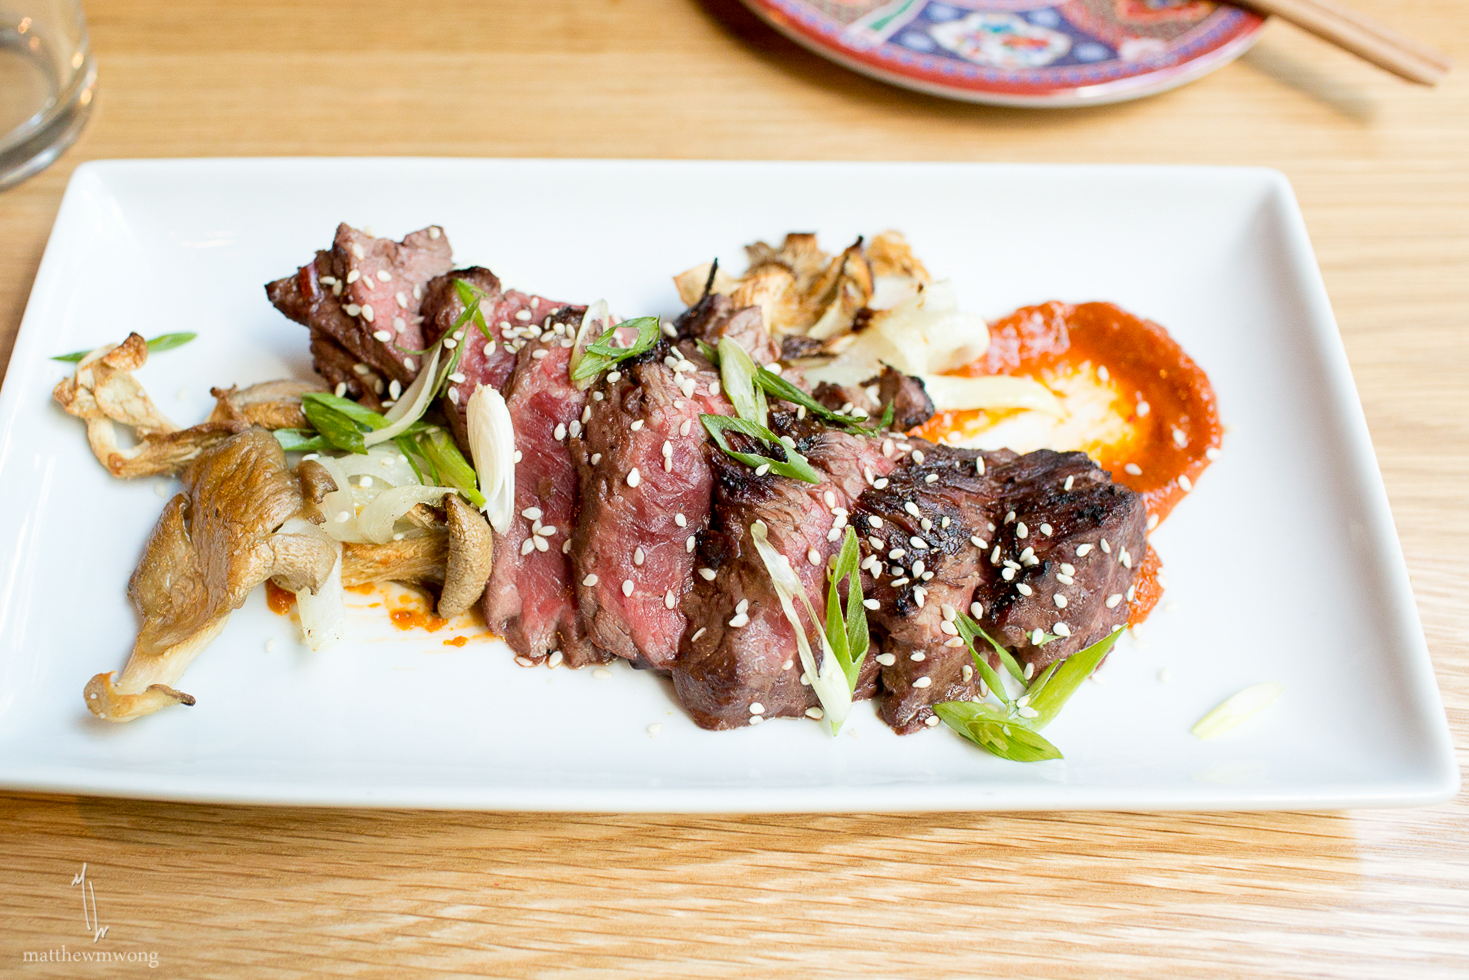 Kalbi Butchered Steak - roasted mushroom, charred onions, sesame seeds, Ssamjang sauce